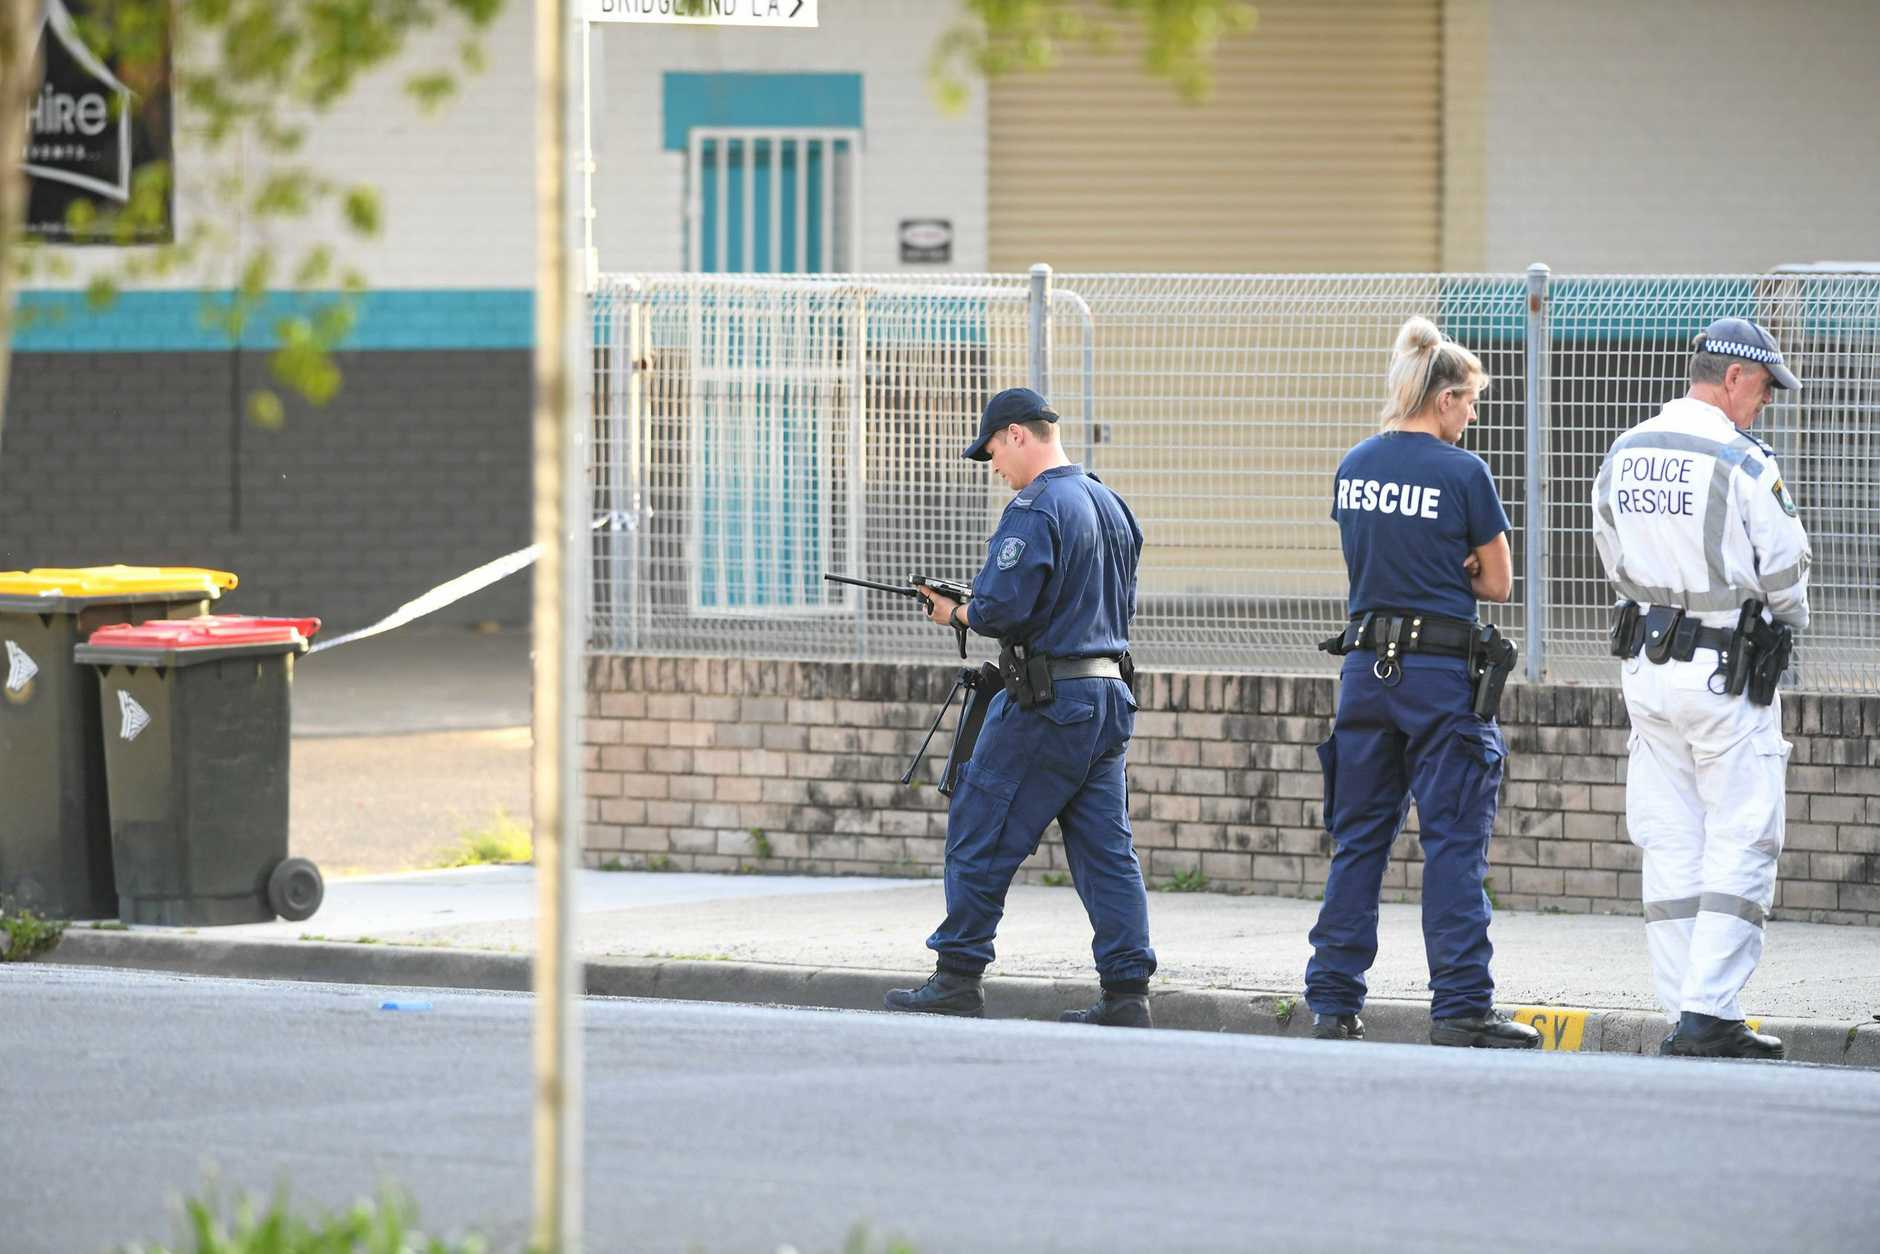 Police use specialised equipment to disarm a improvised explosion device at Mullumbimby.